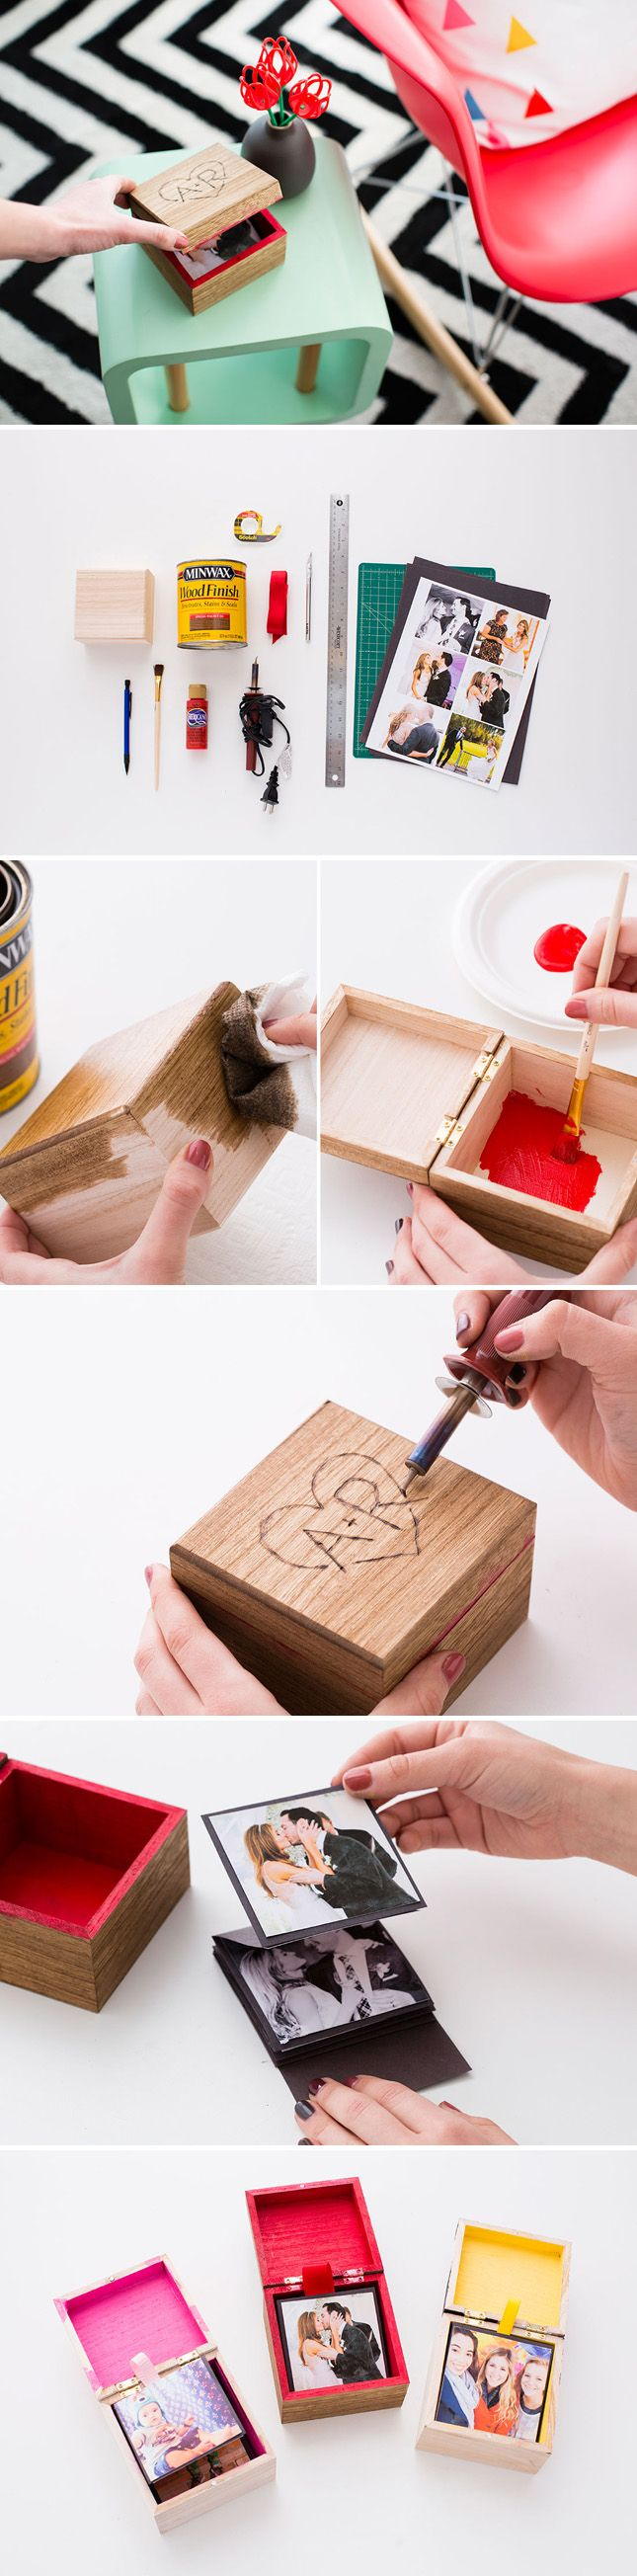 Looking for a homemade gift make this pop up photo box looking for a homemade gift make this pop up photo box solutioingenieria Choice Image